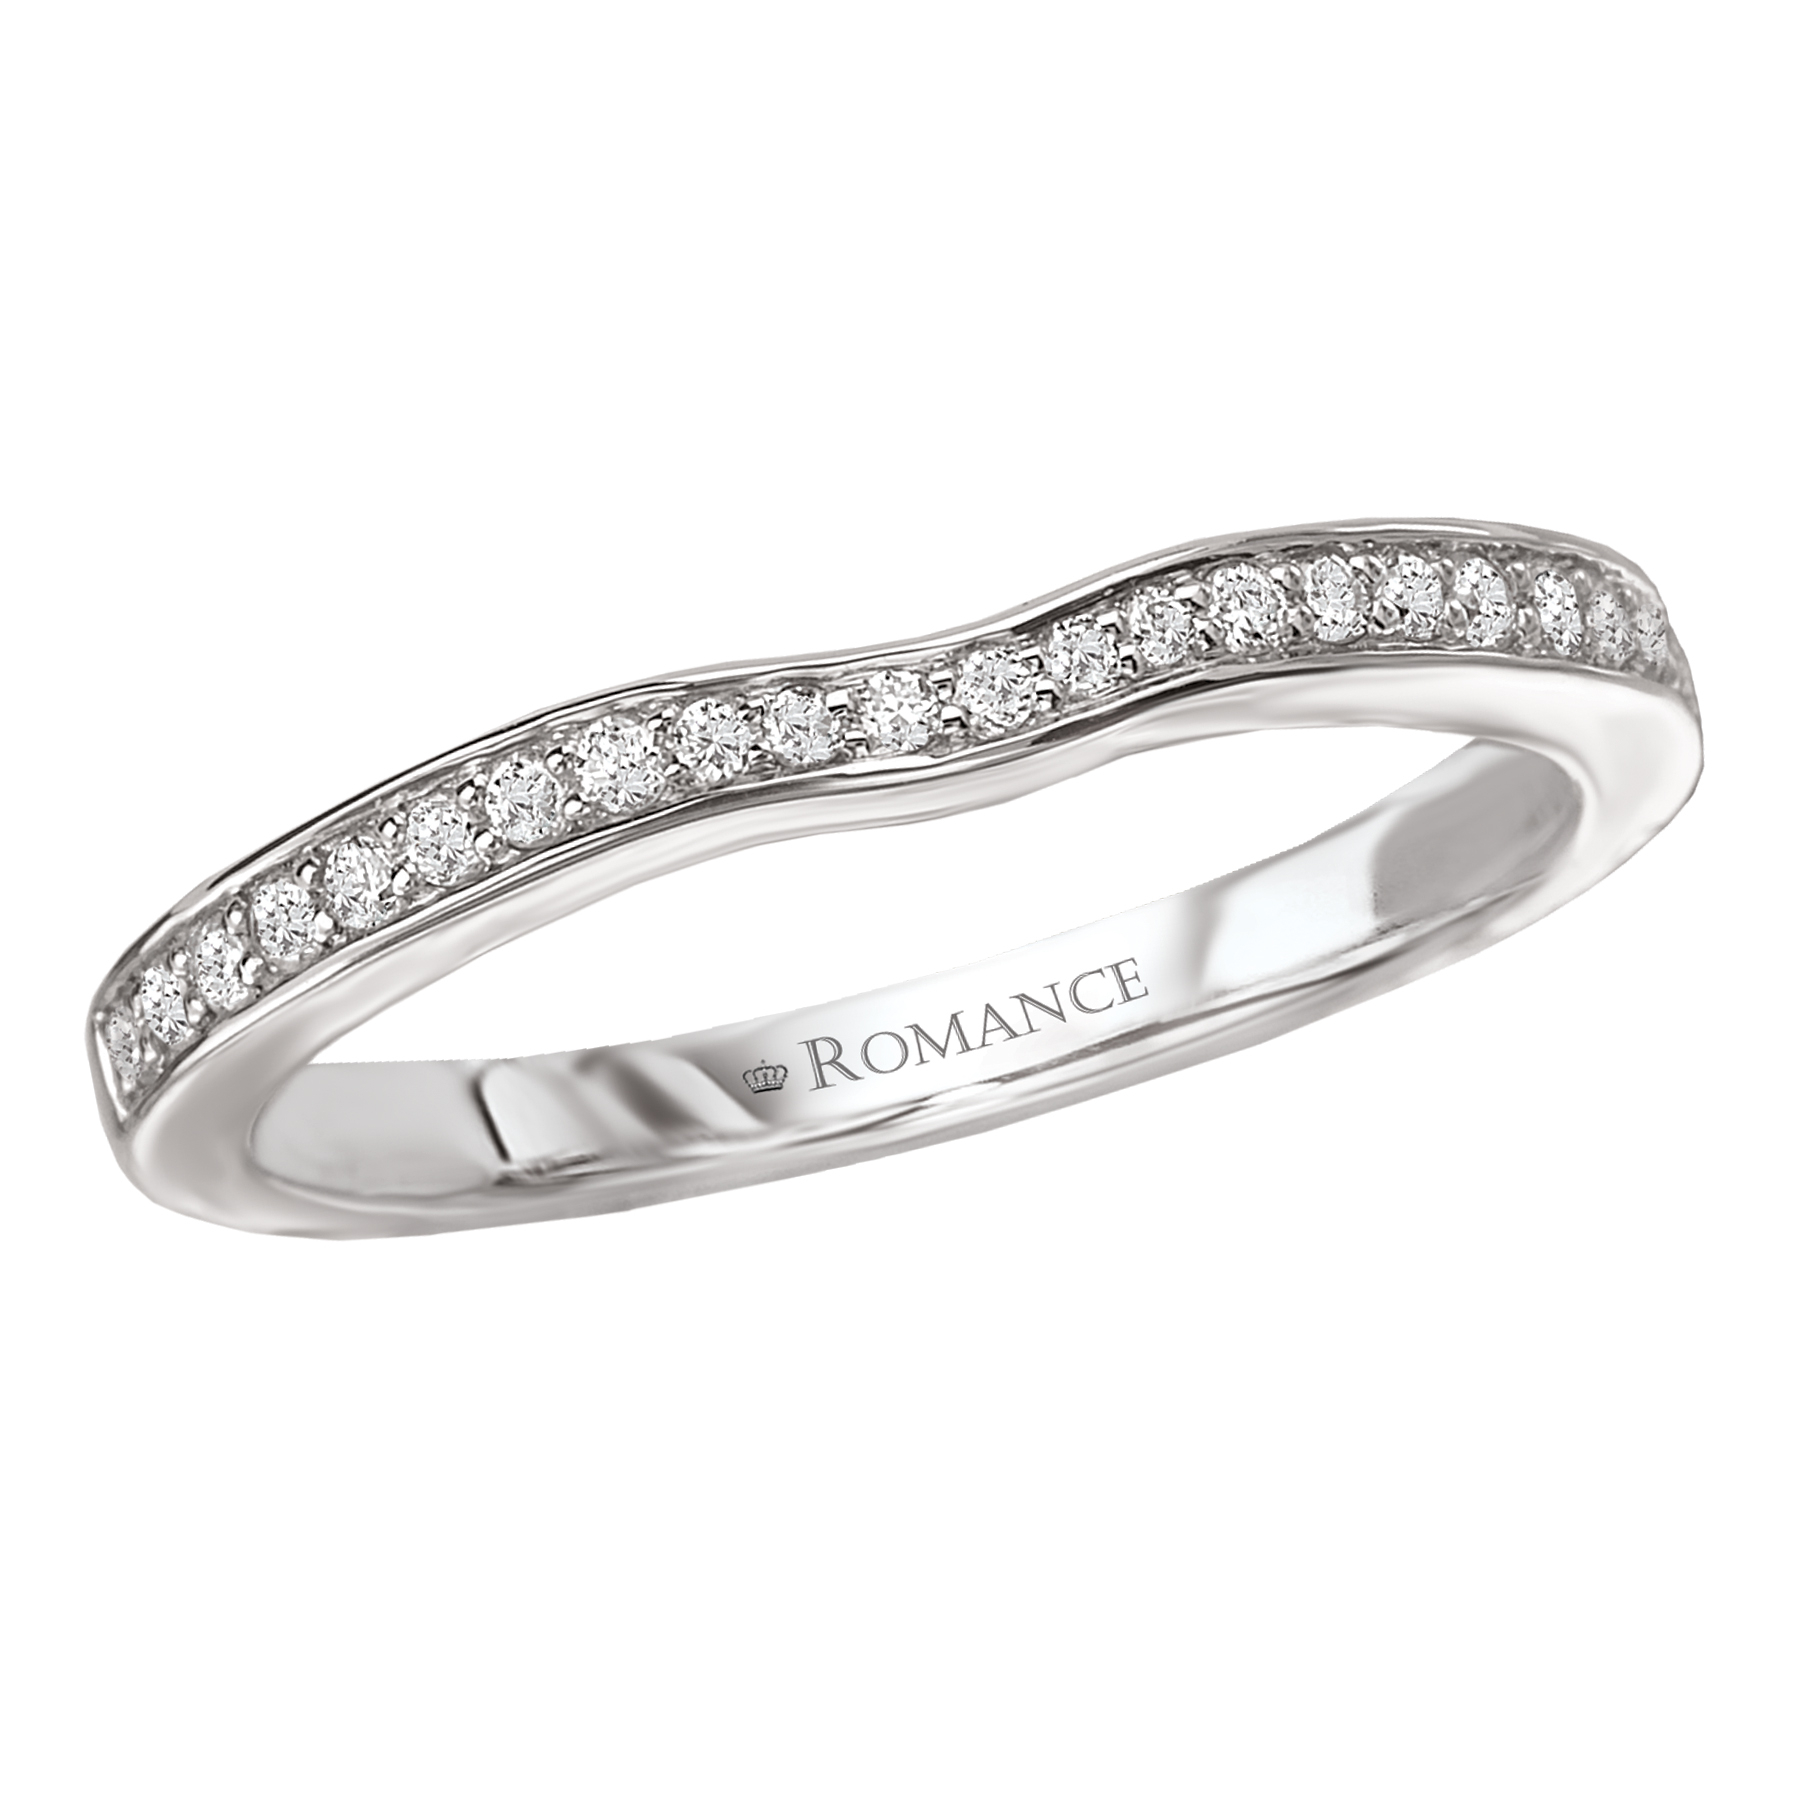 Romance Wedding Bands 117236-W product image